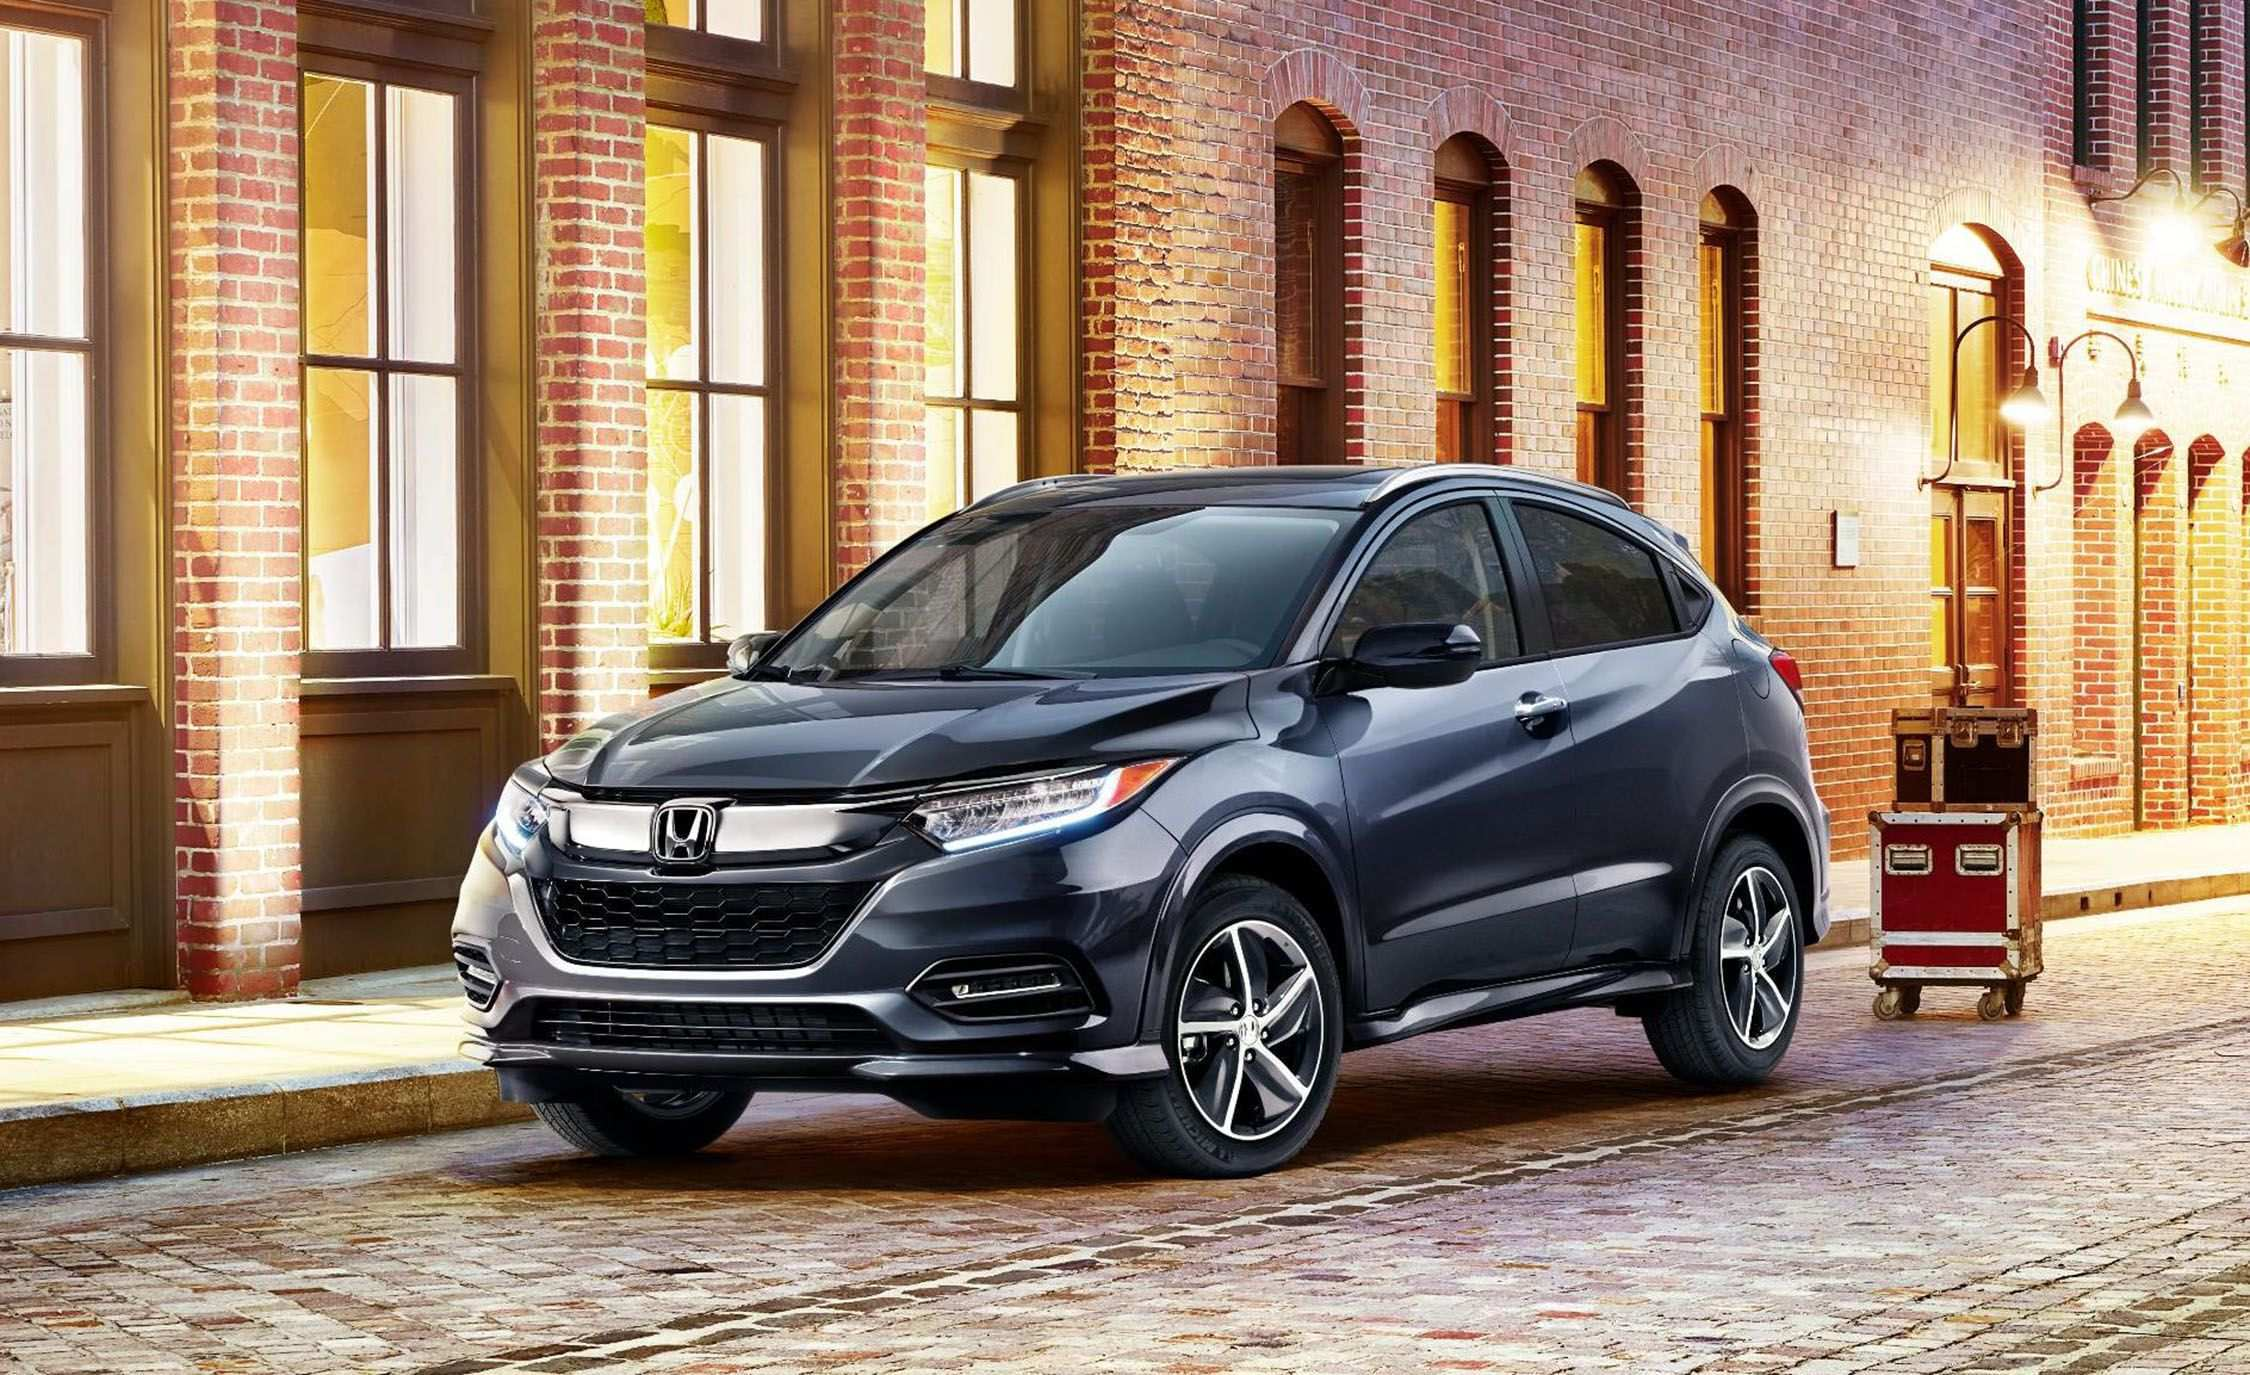 38 Gallery of 2019 Honda Hrv Changes Redesign and Concept with 2019 Honda Hrv Changes